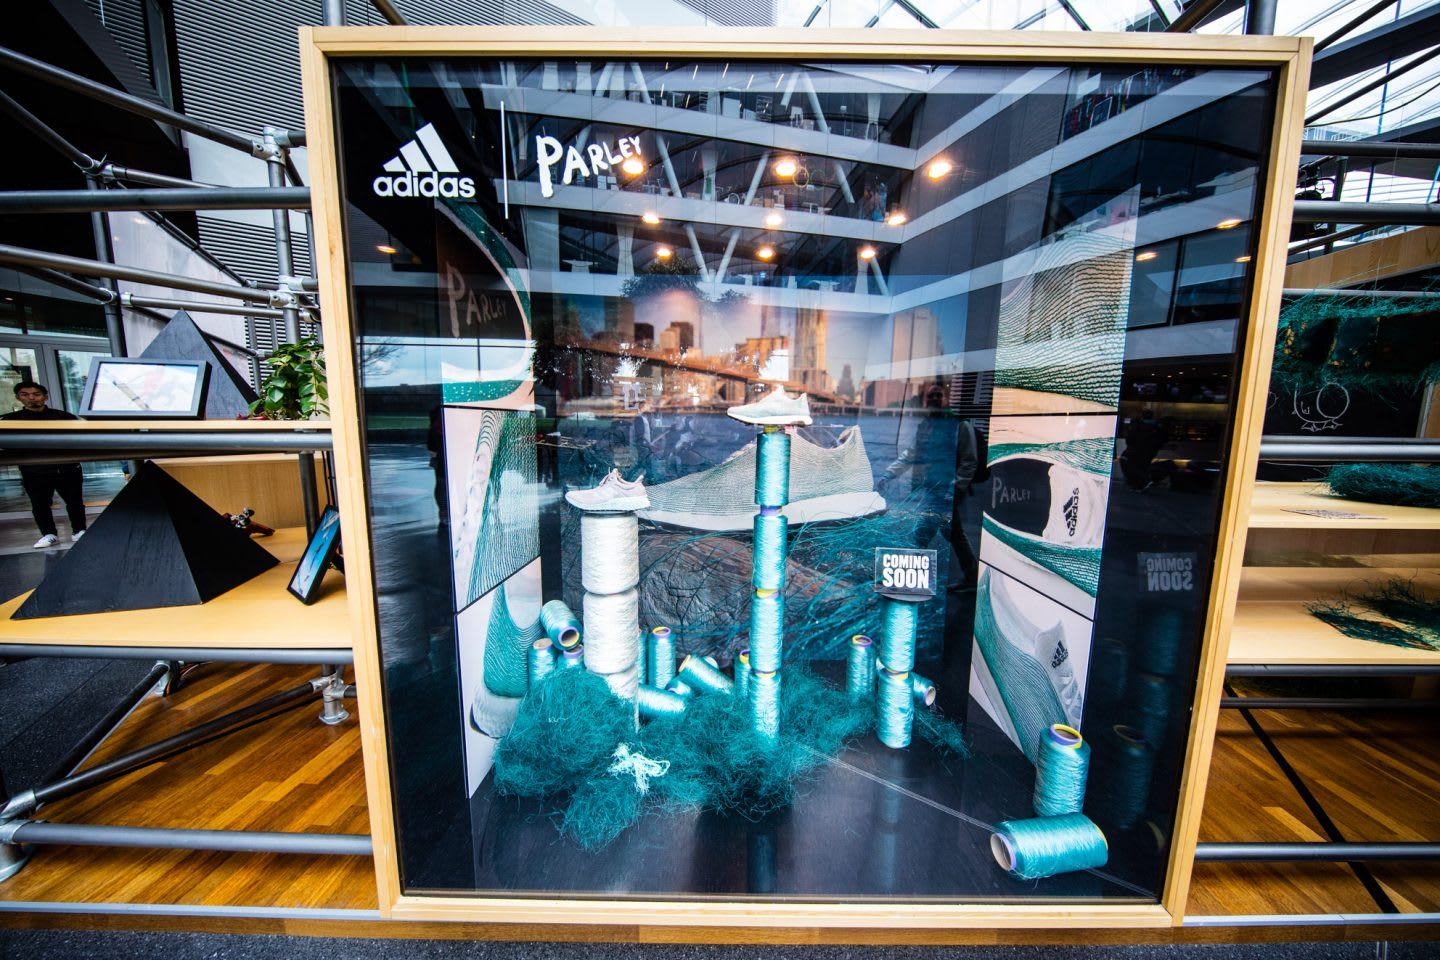 Showcase of adidas Parley shoes. avoid plastic, sustainability, habits and routines, inspiration, GamePlan A.